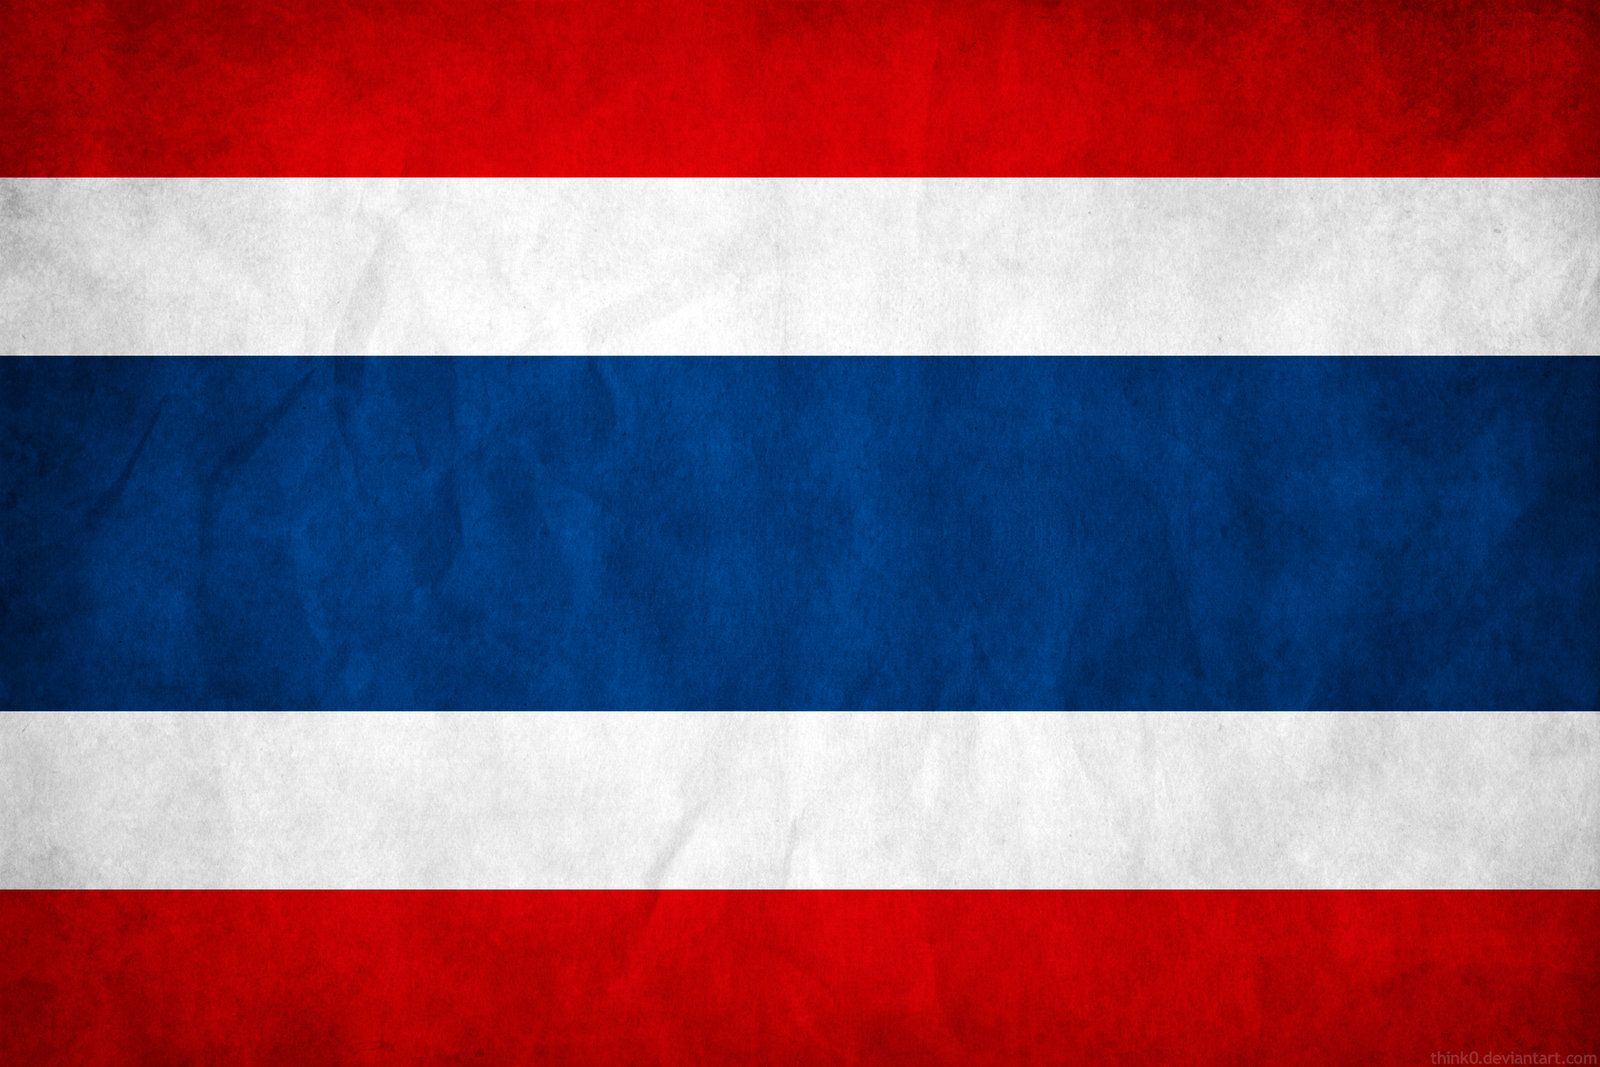 Thailand Grunge Flag By Think0 Deviantart Com On Deviantart